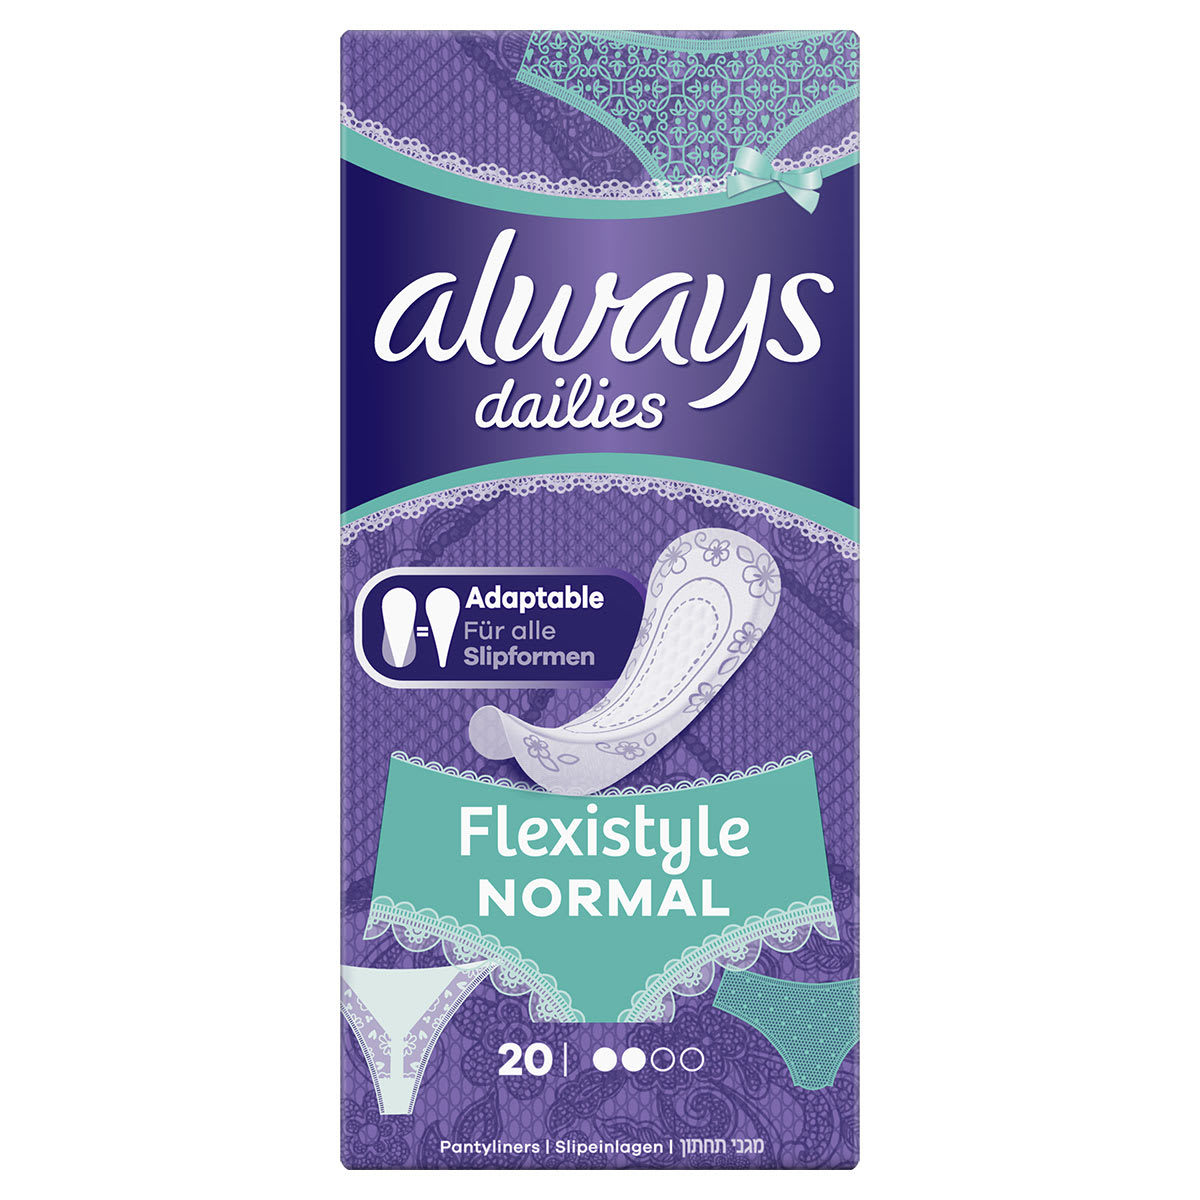 ALWAYS DAILIES Flexistyle Panty Liners Normal